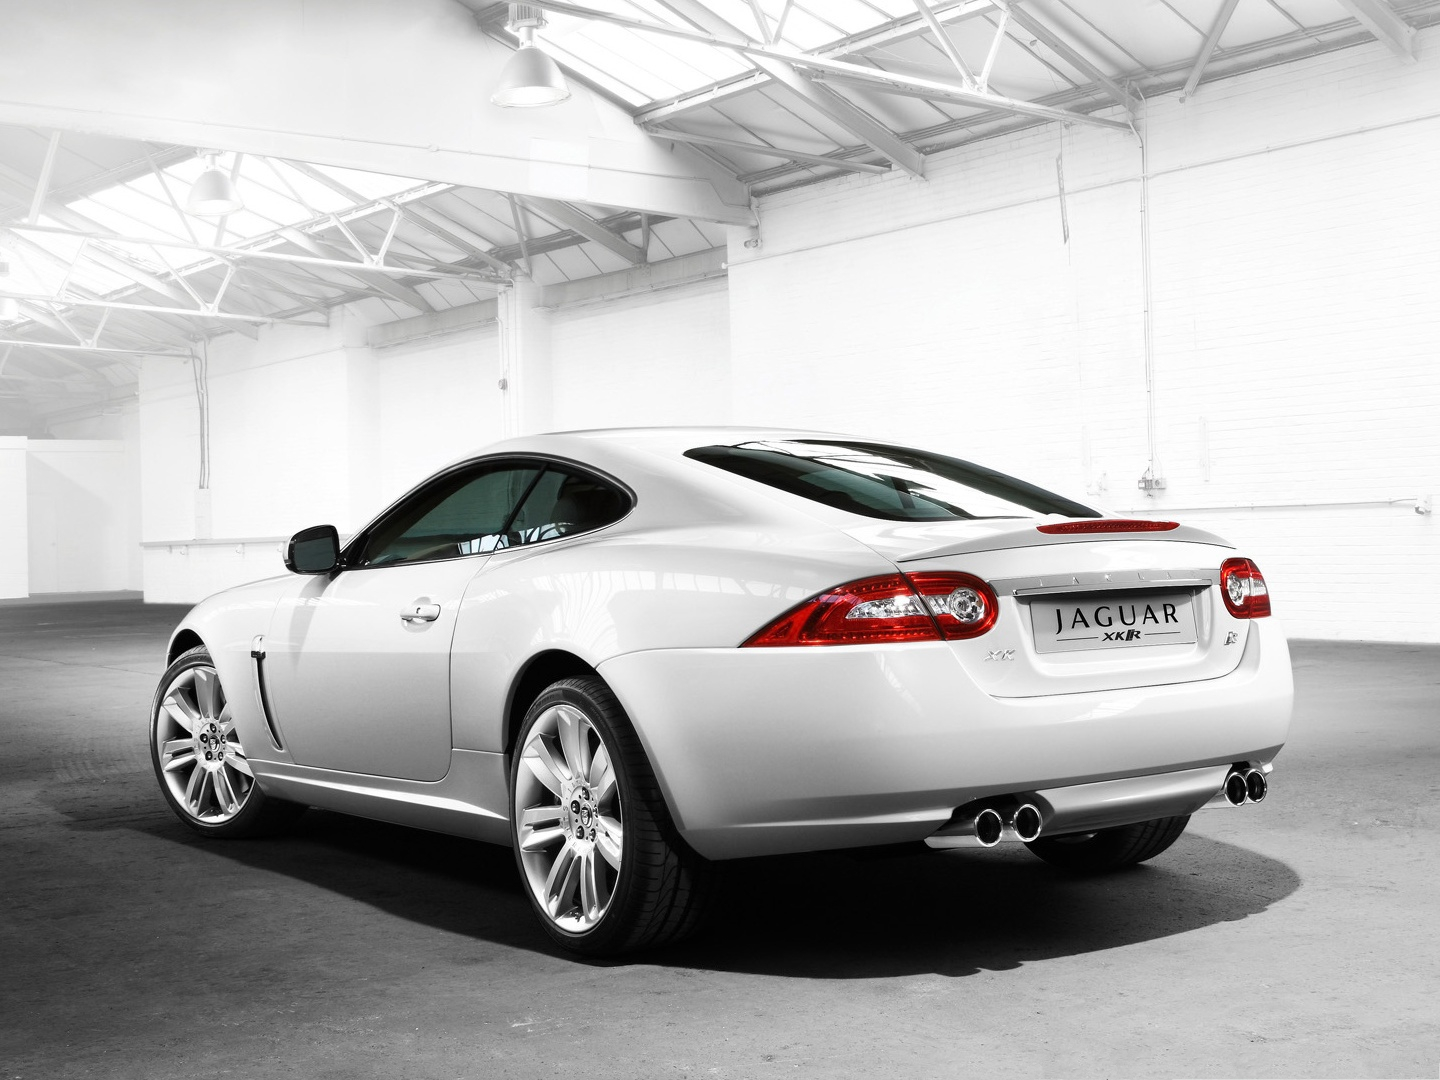 click to free download the wallpaper--Super Car as Background, White Jaguar Car on Black and Flat Road, Decent Look 1440X1080 free wallpaper download